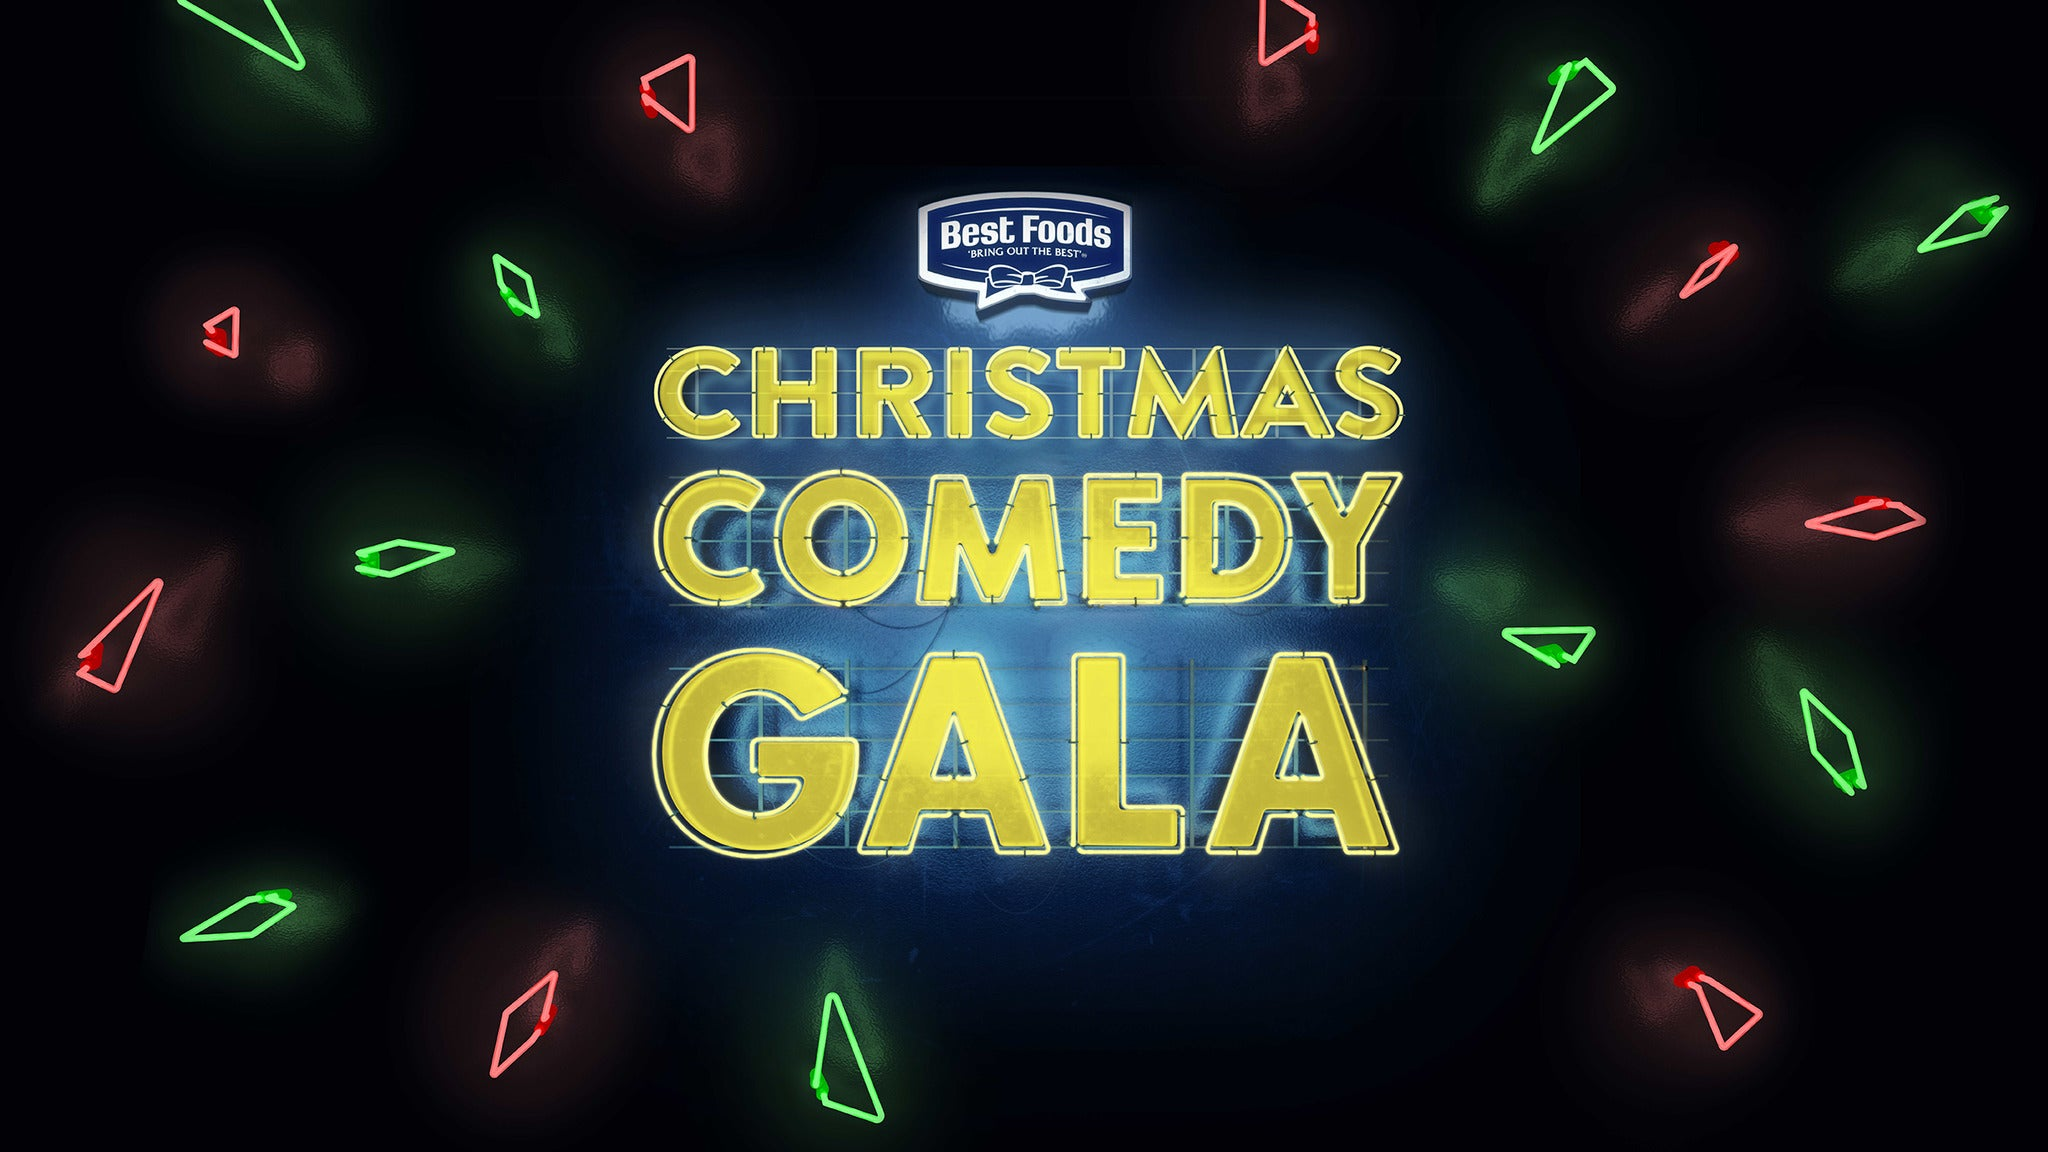 Best Foods Christmas Comedy Gala tickets (Copyright © Ticketmaster)